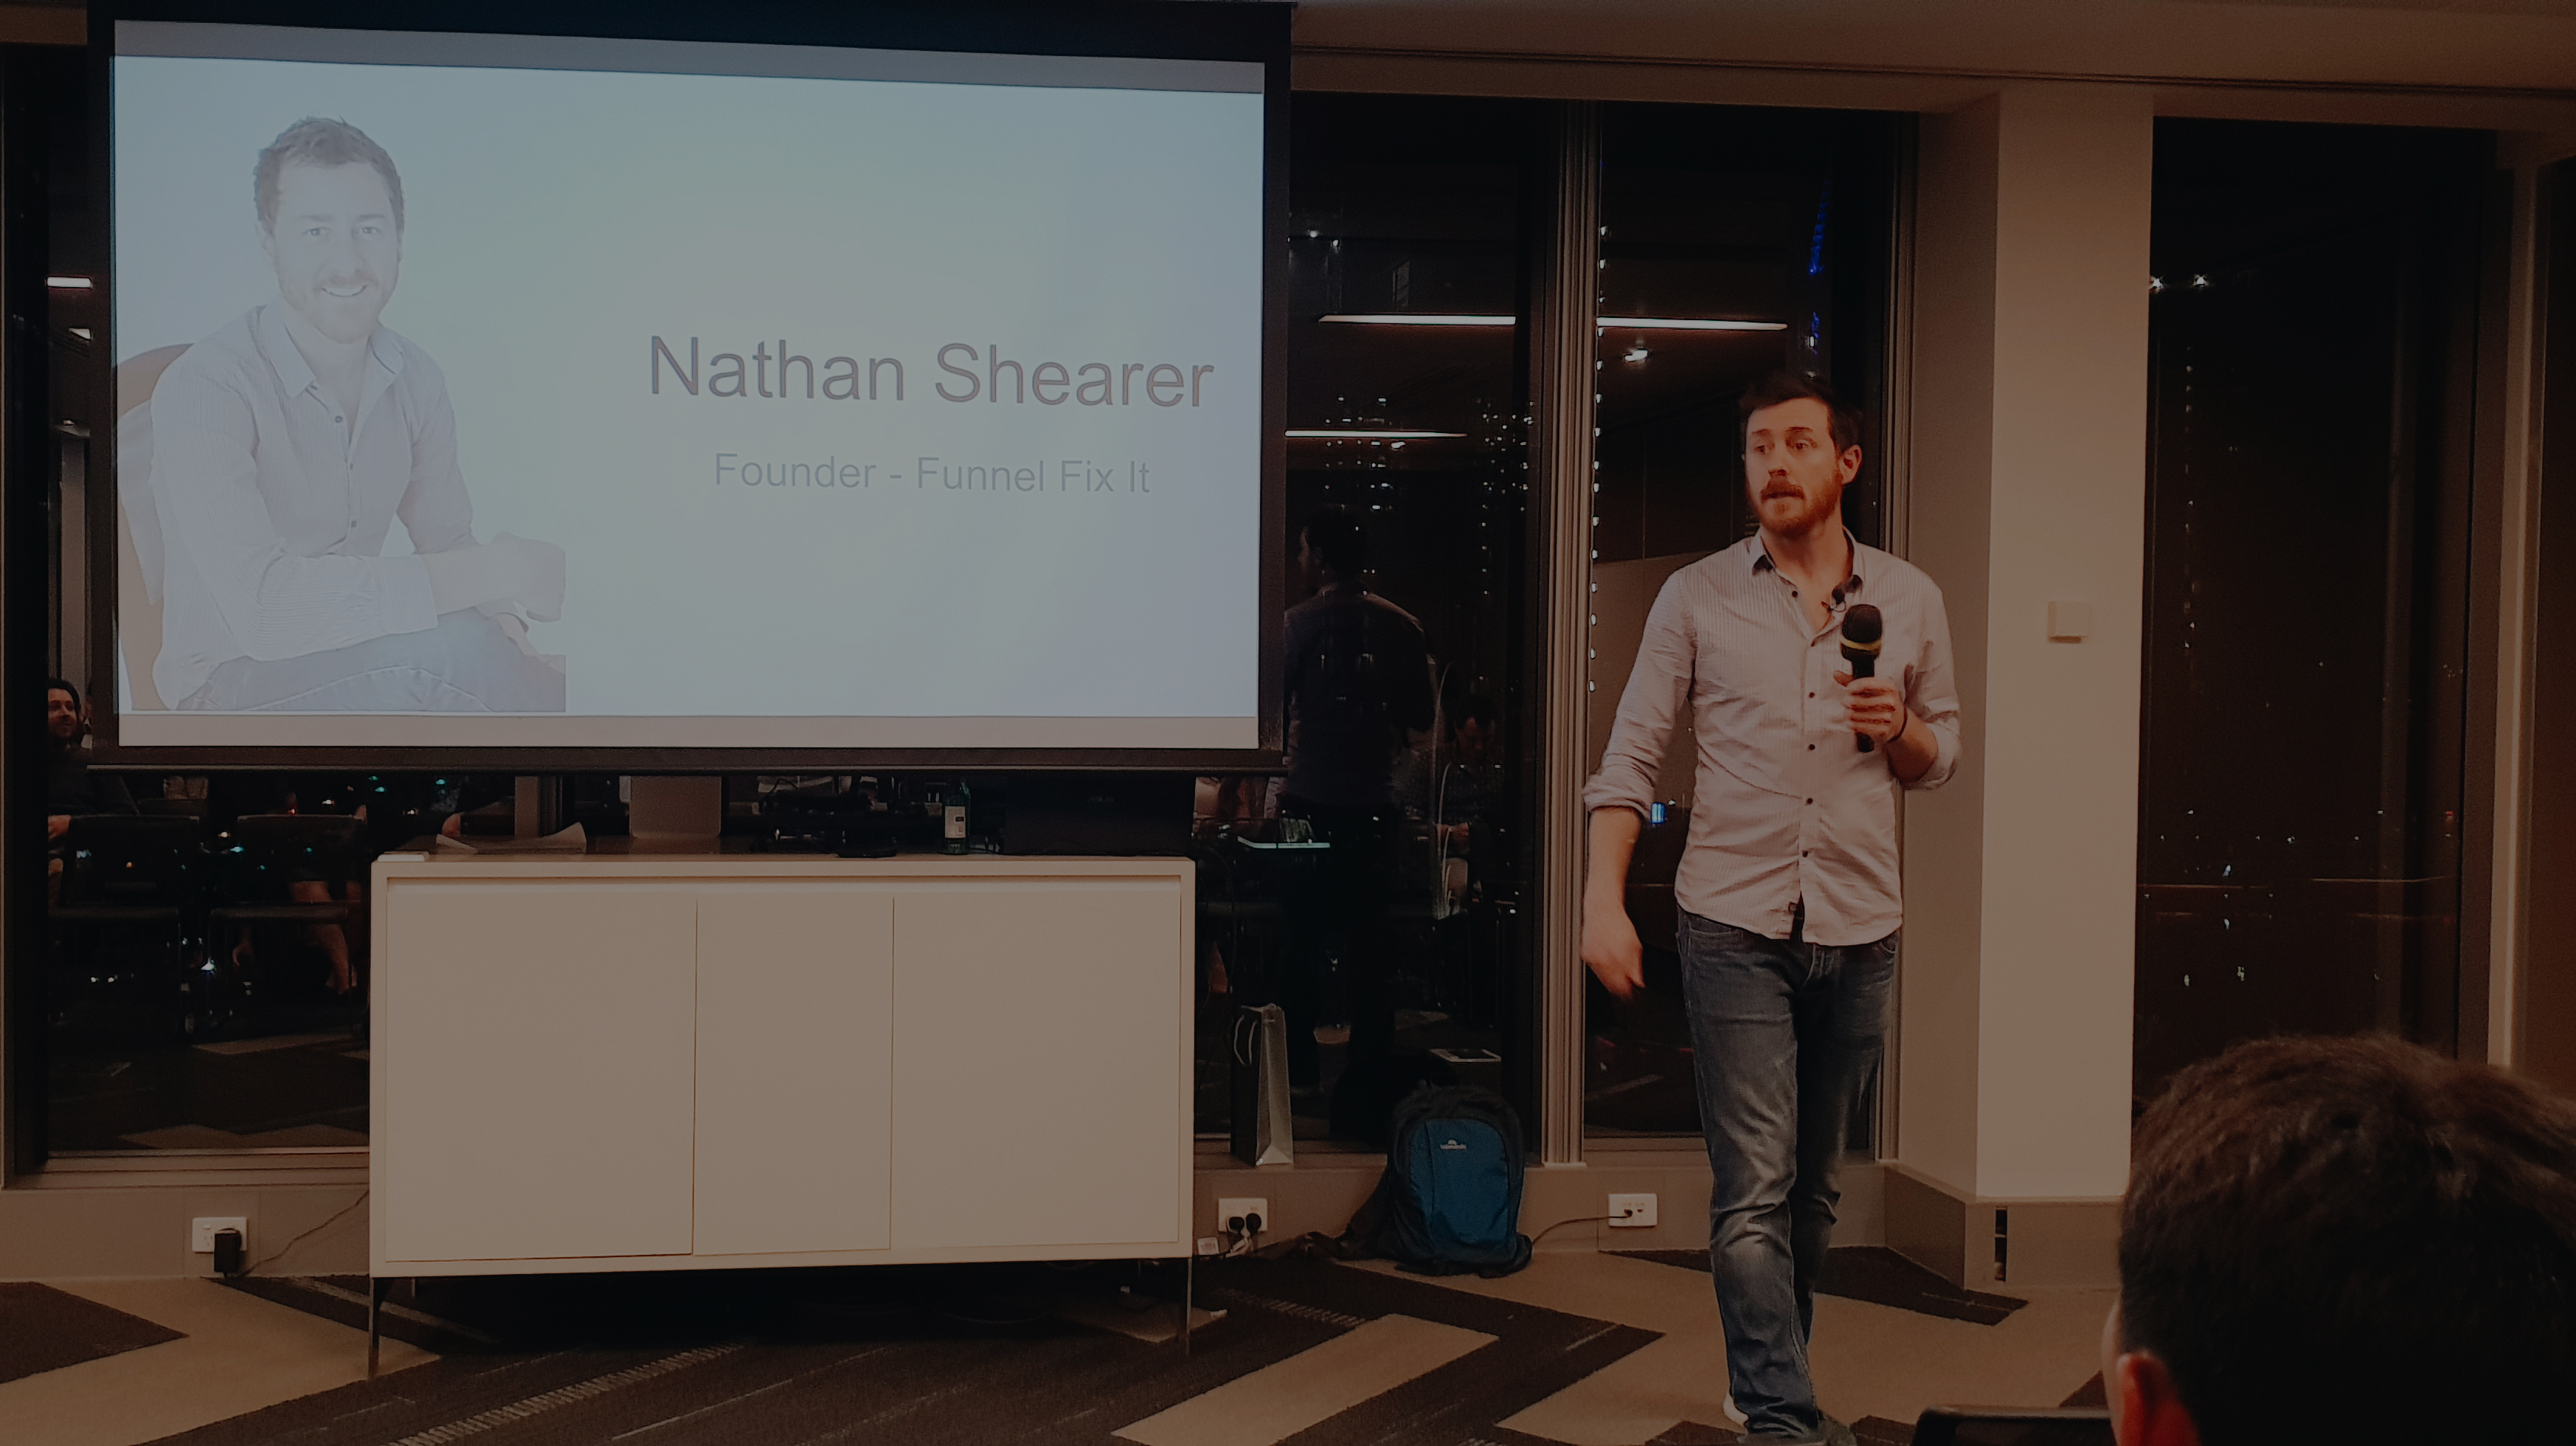 Nathan Shearer Talks About His 7 Day Startup Experience